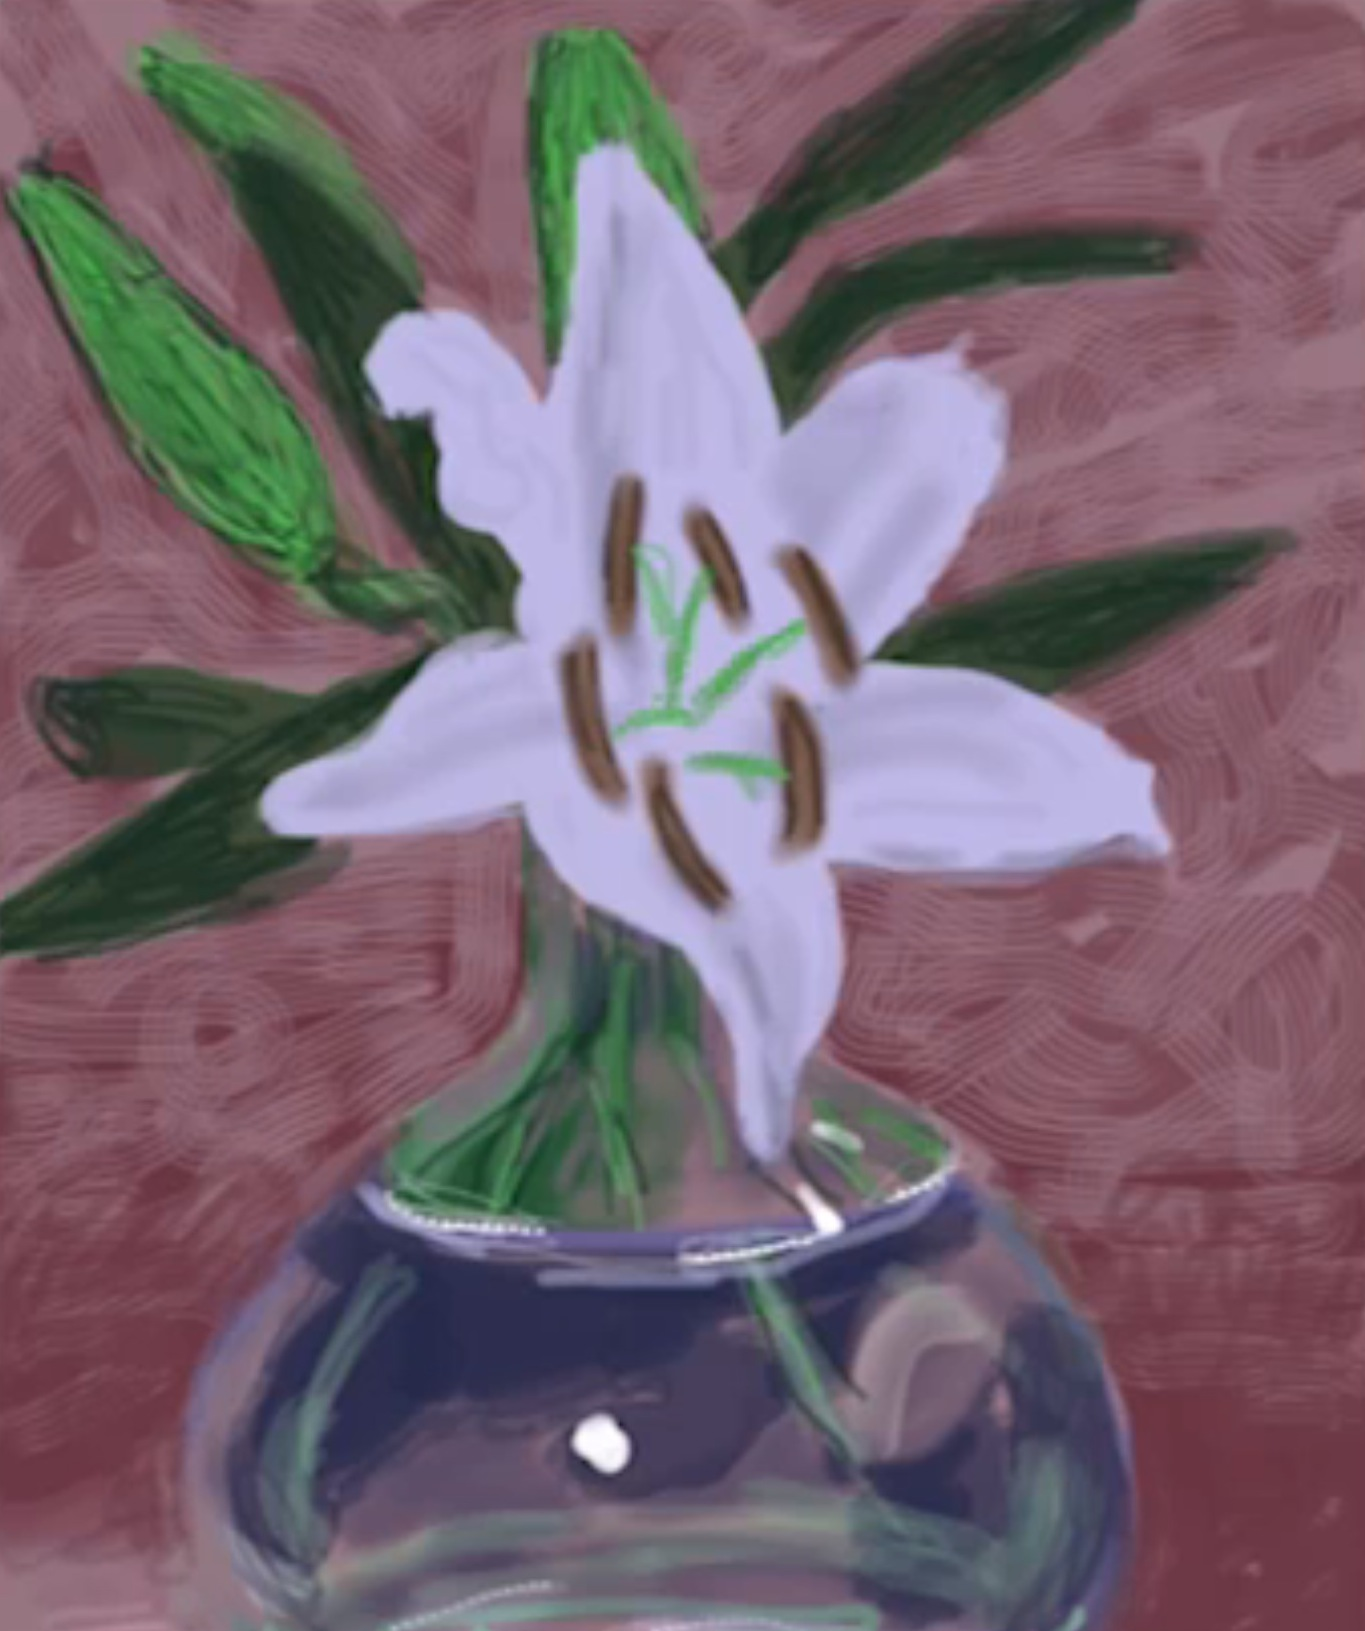 David Hockney iPad Flowers